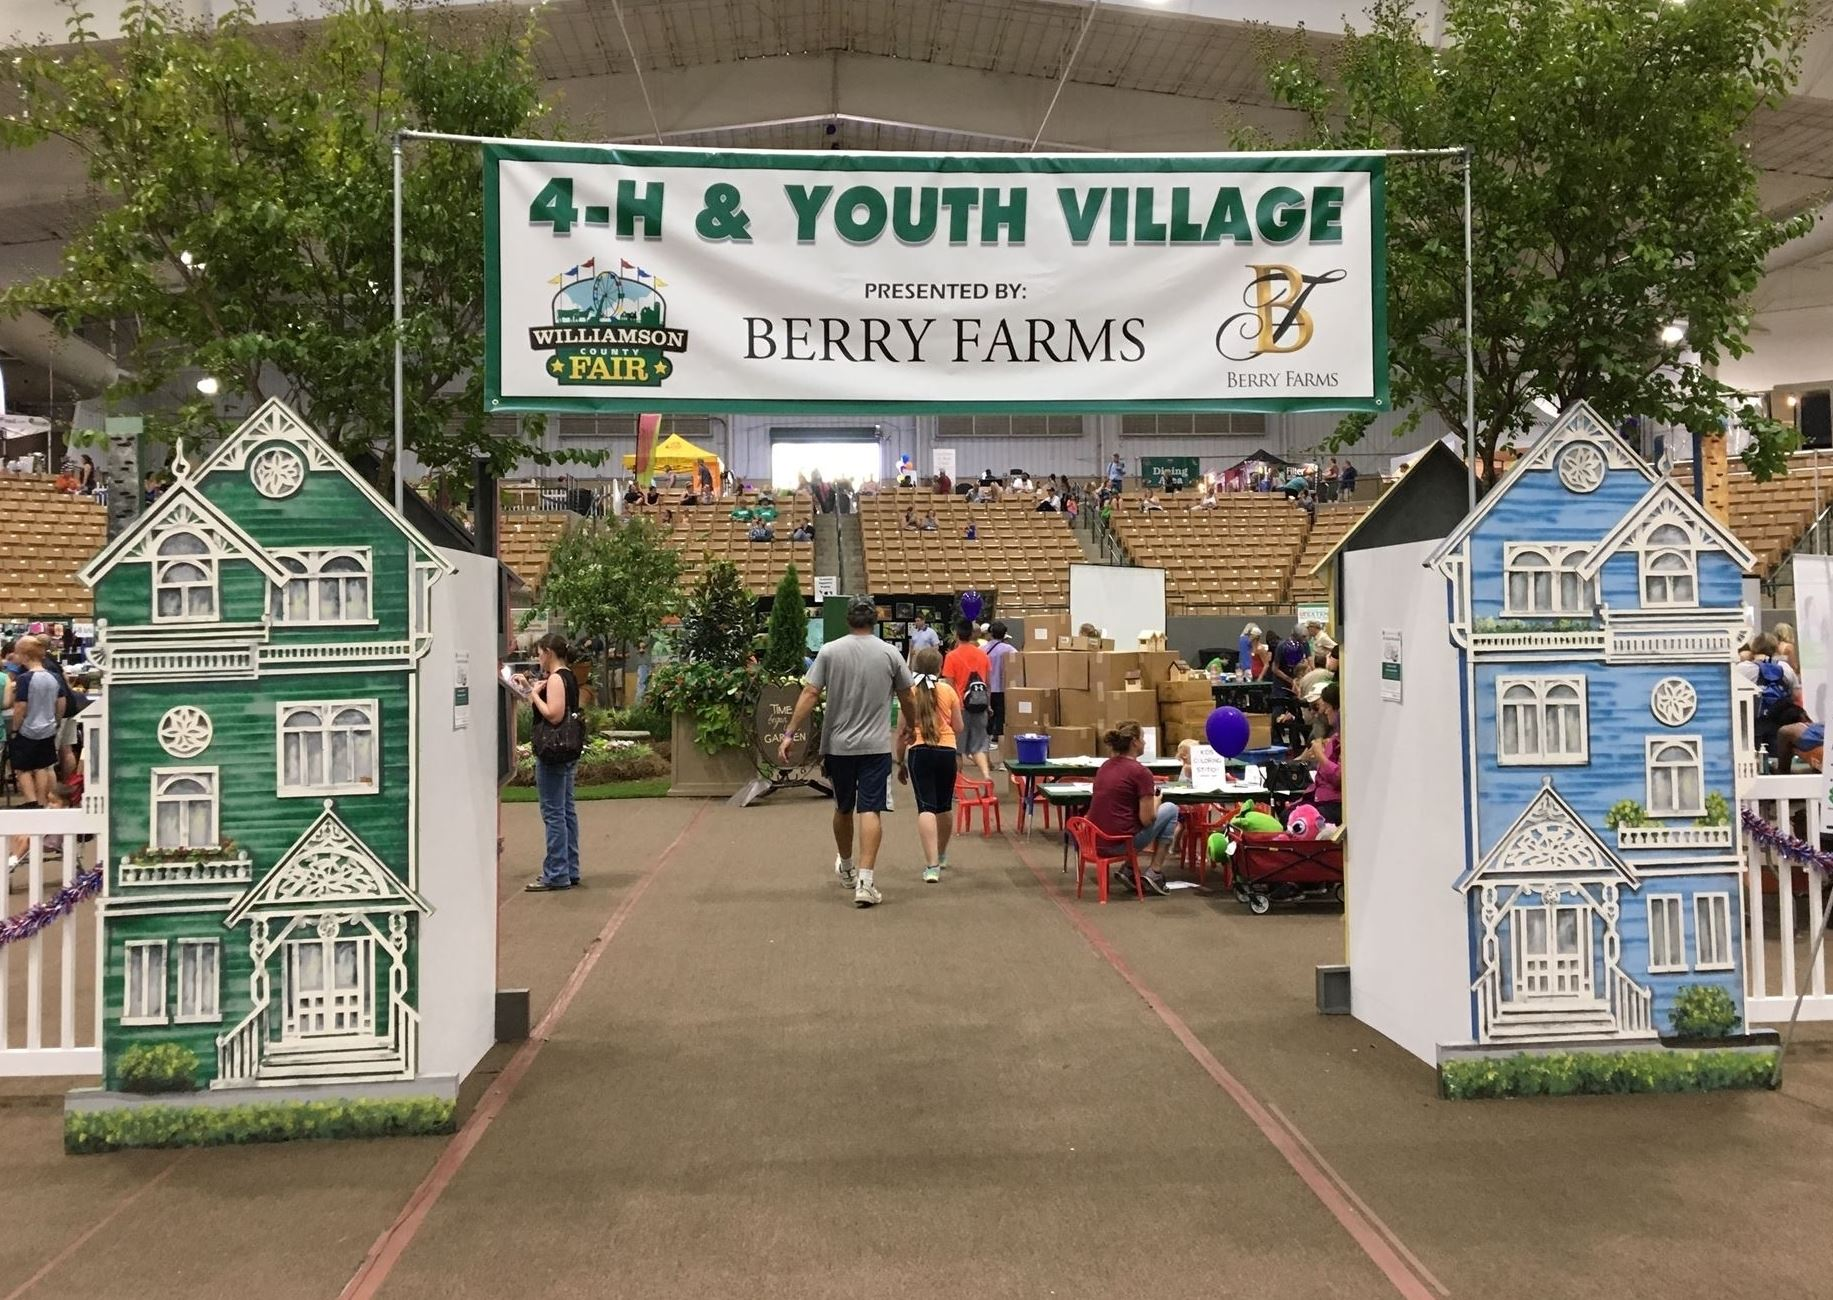 4-H & Youth Village